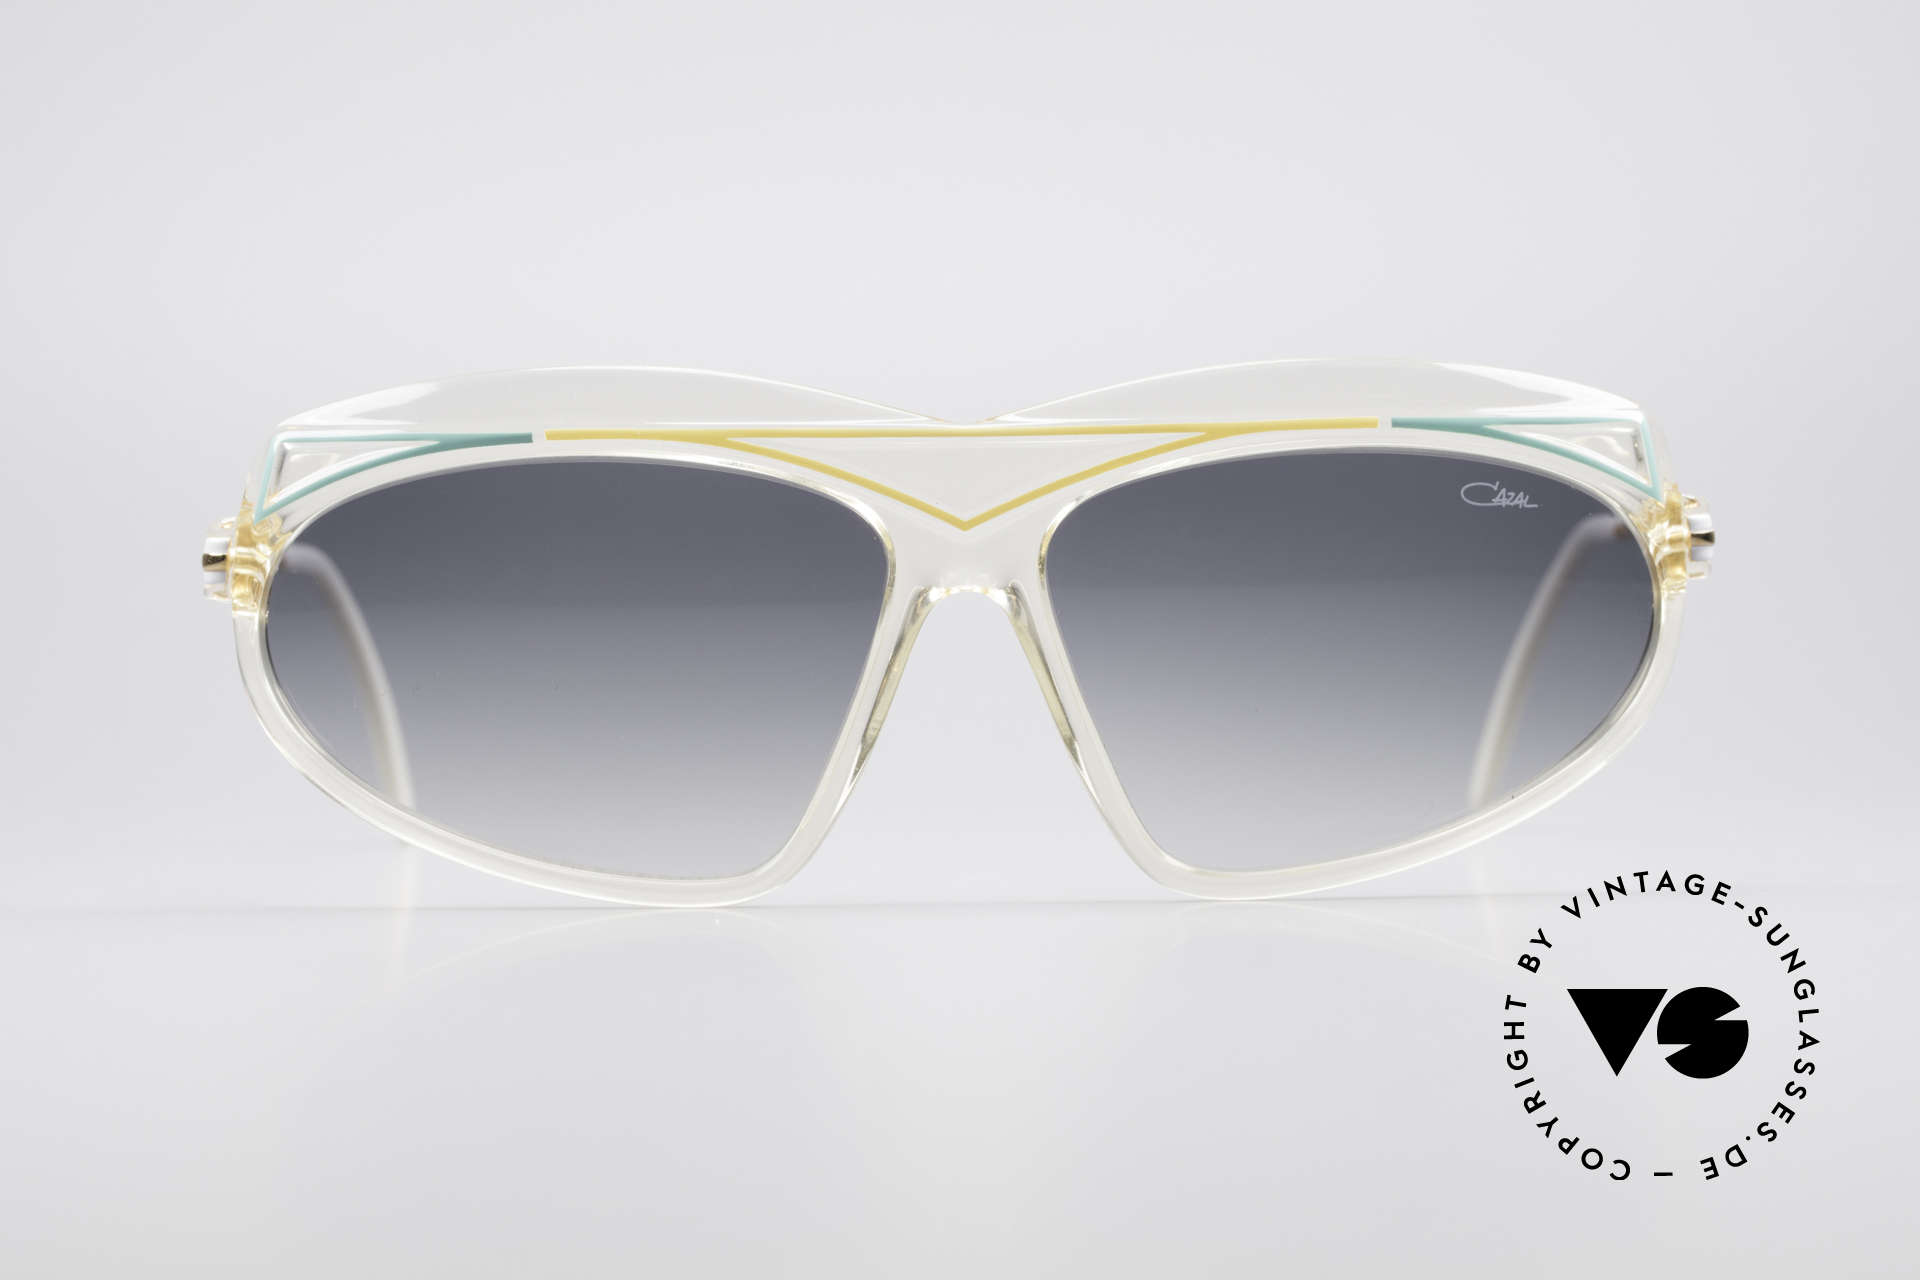 Cazal 854 XL True Vintage Hip Hop Shades, part of the famous US HIP-HOP scene in the 1980's, Made for Women